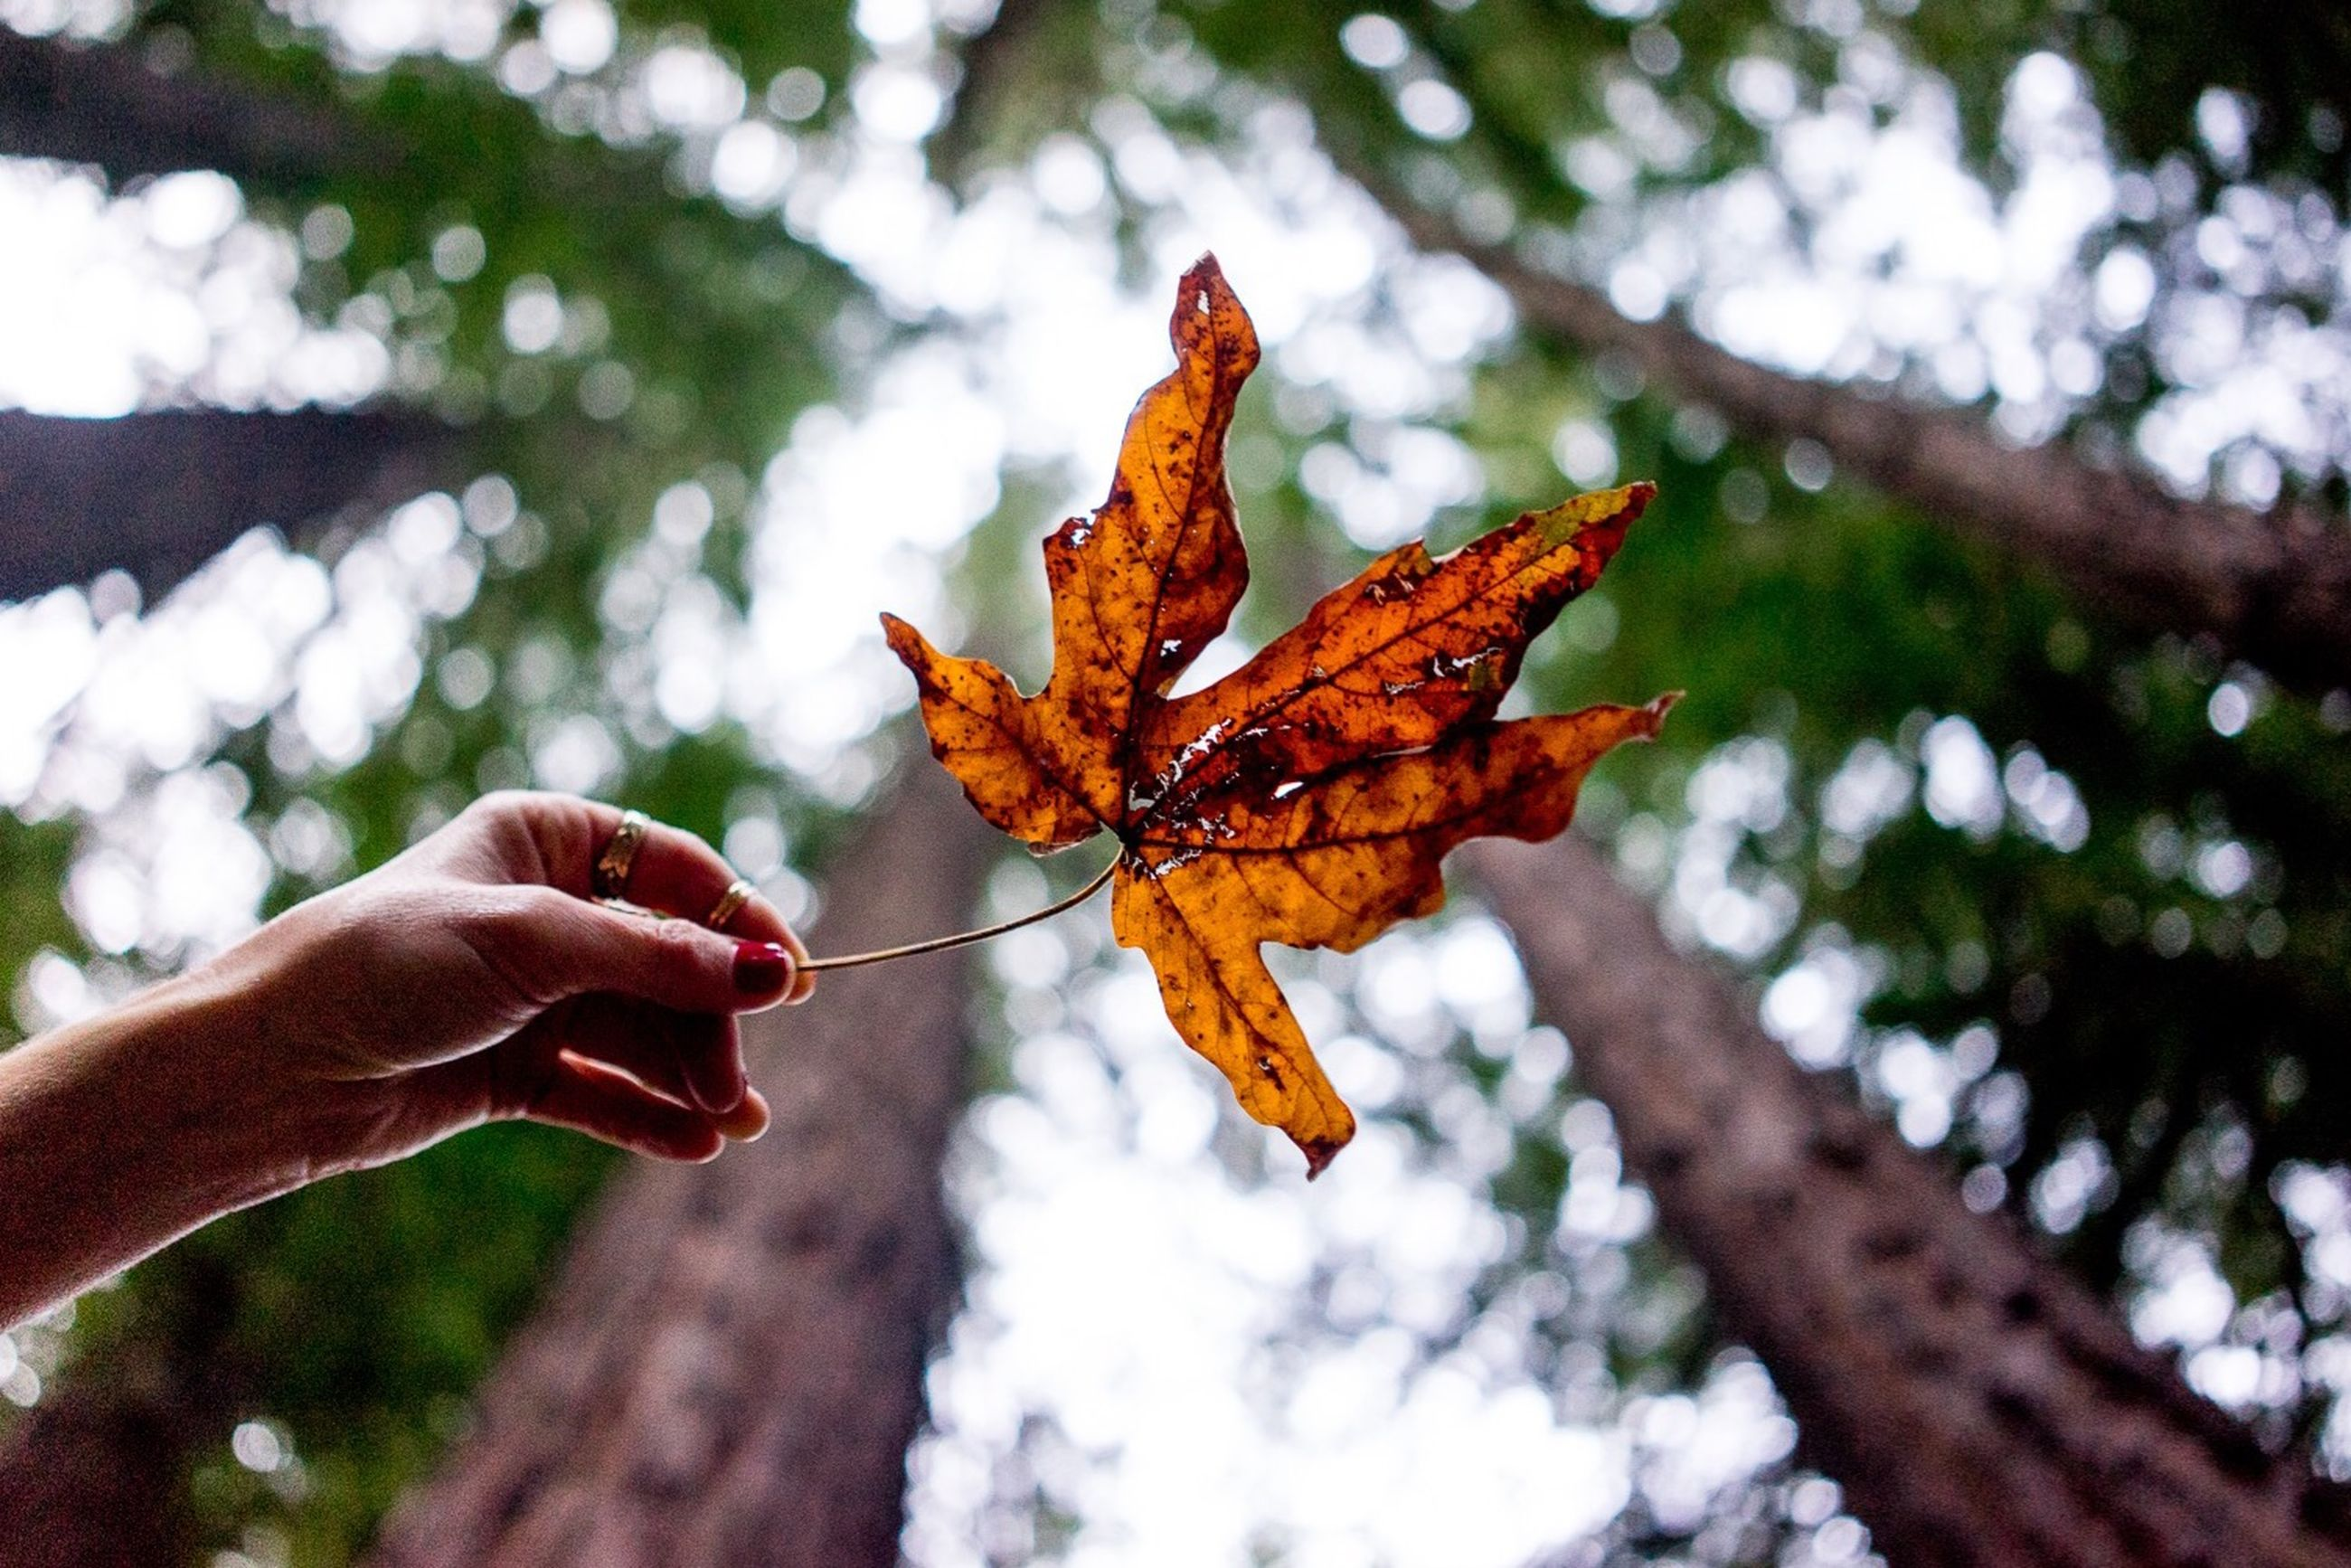 autumn, change, leaf, focus on foreground, season, close-up, maple leaf, dry, leaf vein, nature, orange color, branch, leaves, tree, natural pattern, fragility, day, part of, outdoors, person